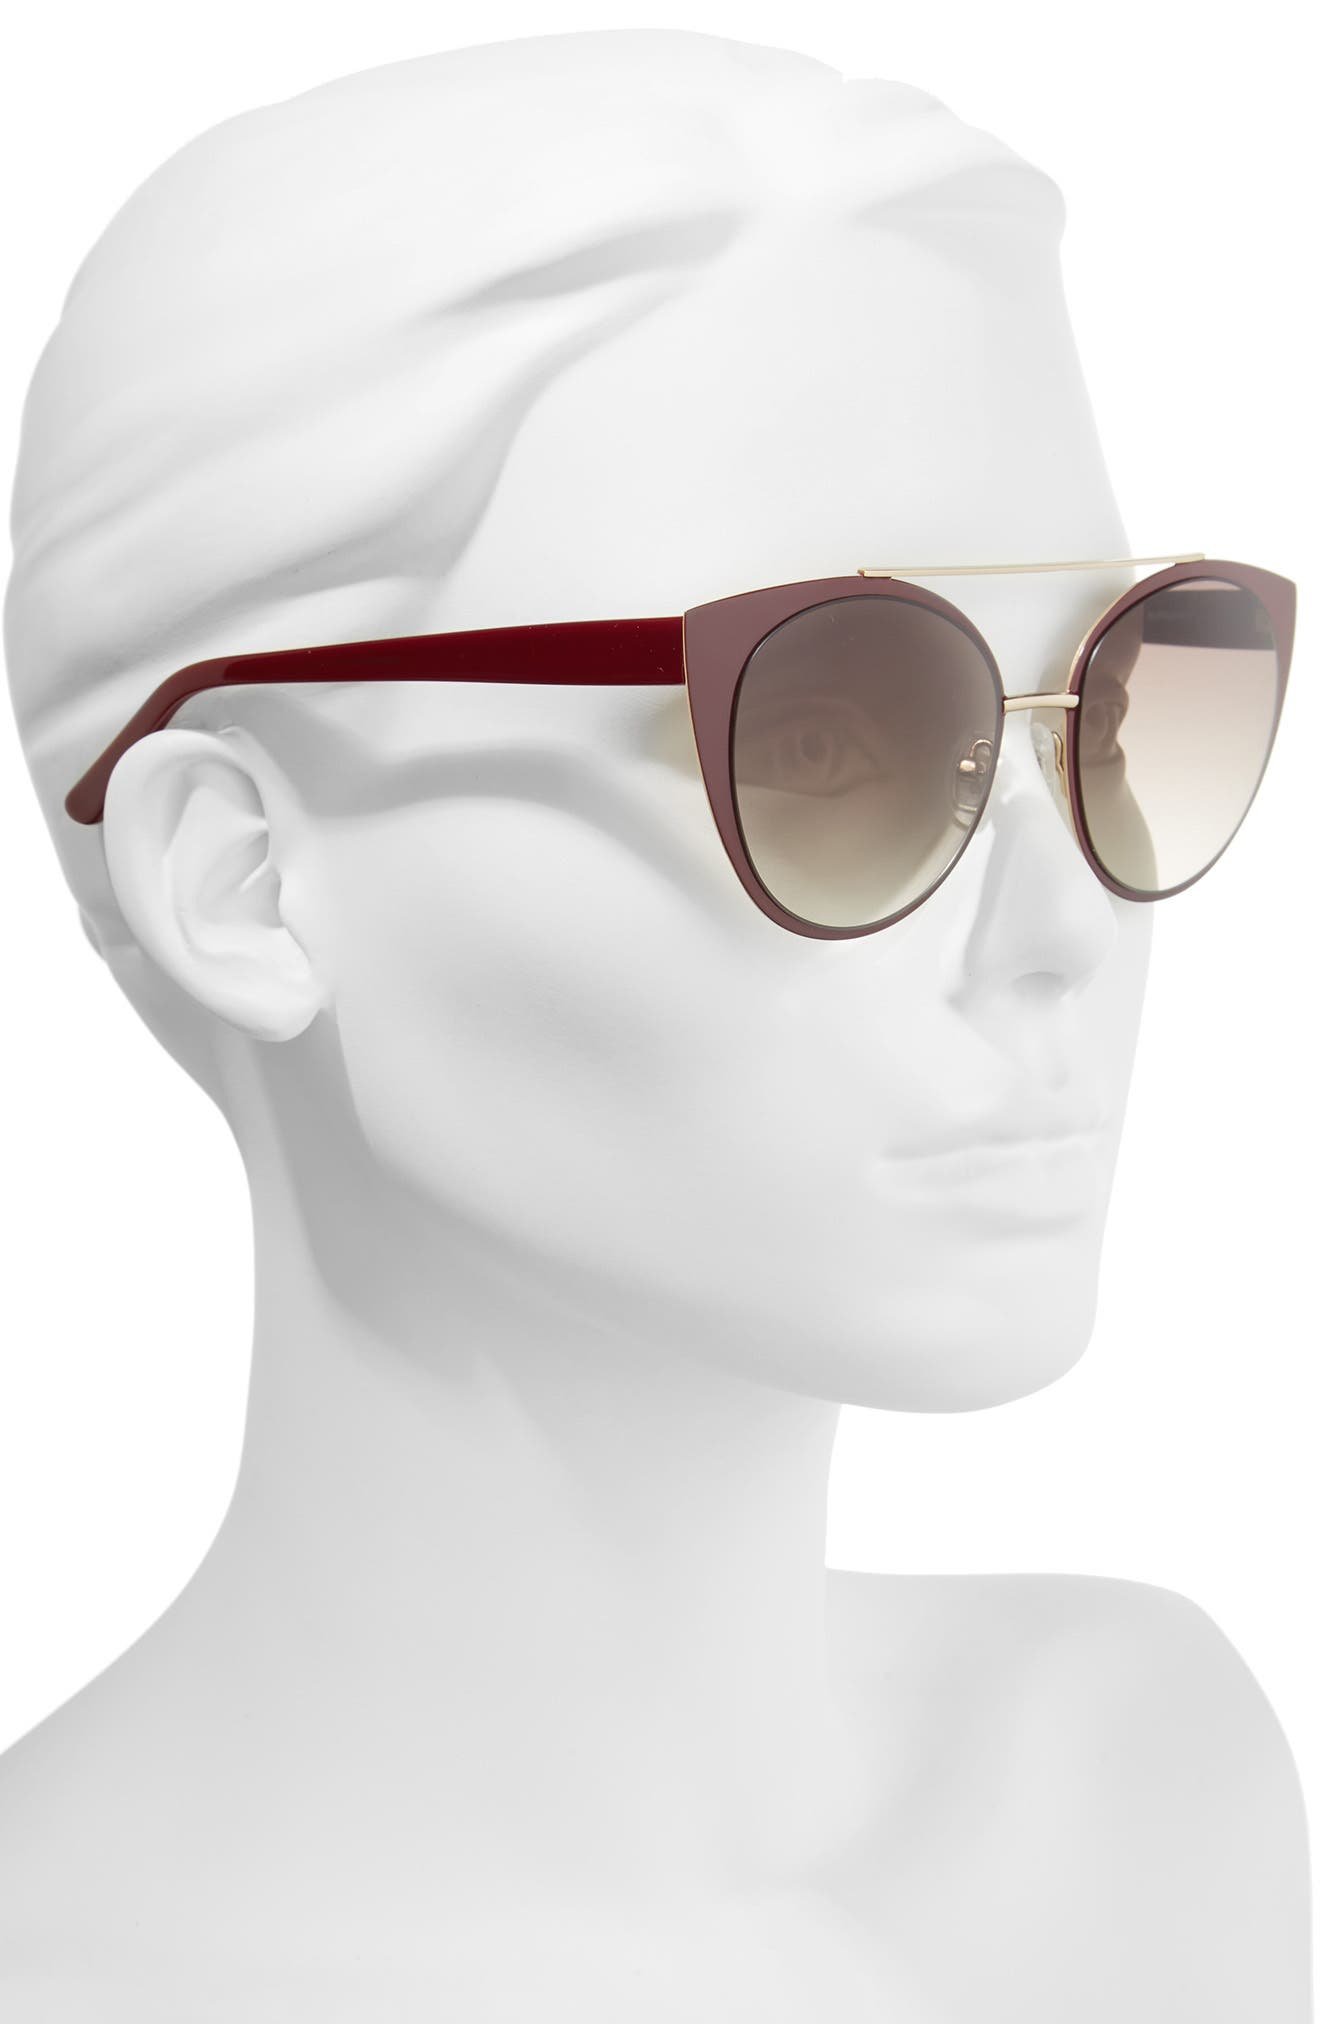 Amelia 53mm Aviator Sunglasses,                             Alternate thumbnail 2, color,                             Burgundy